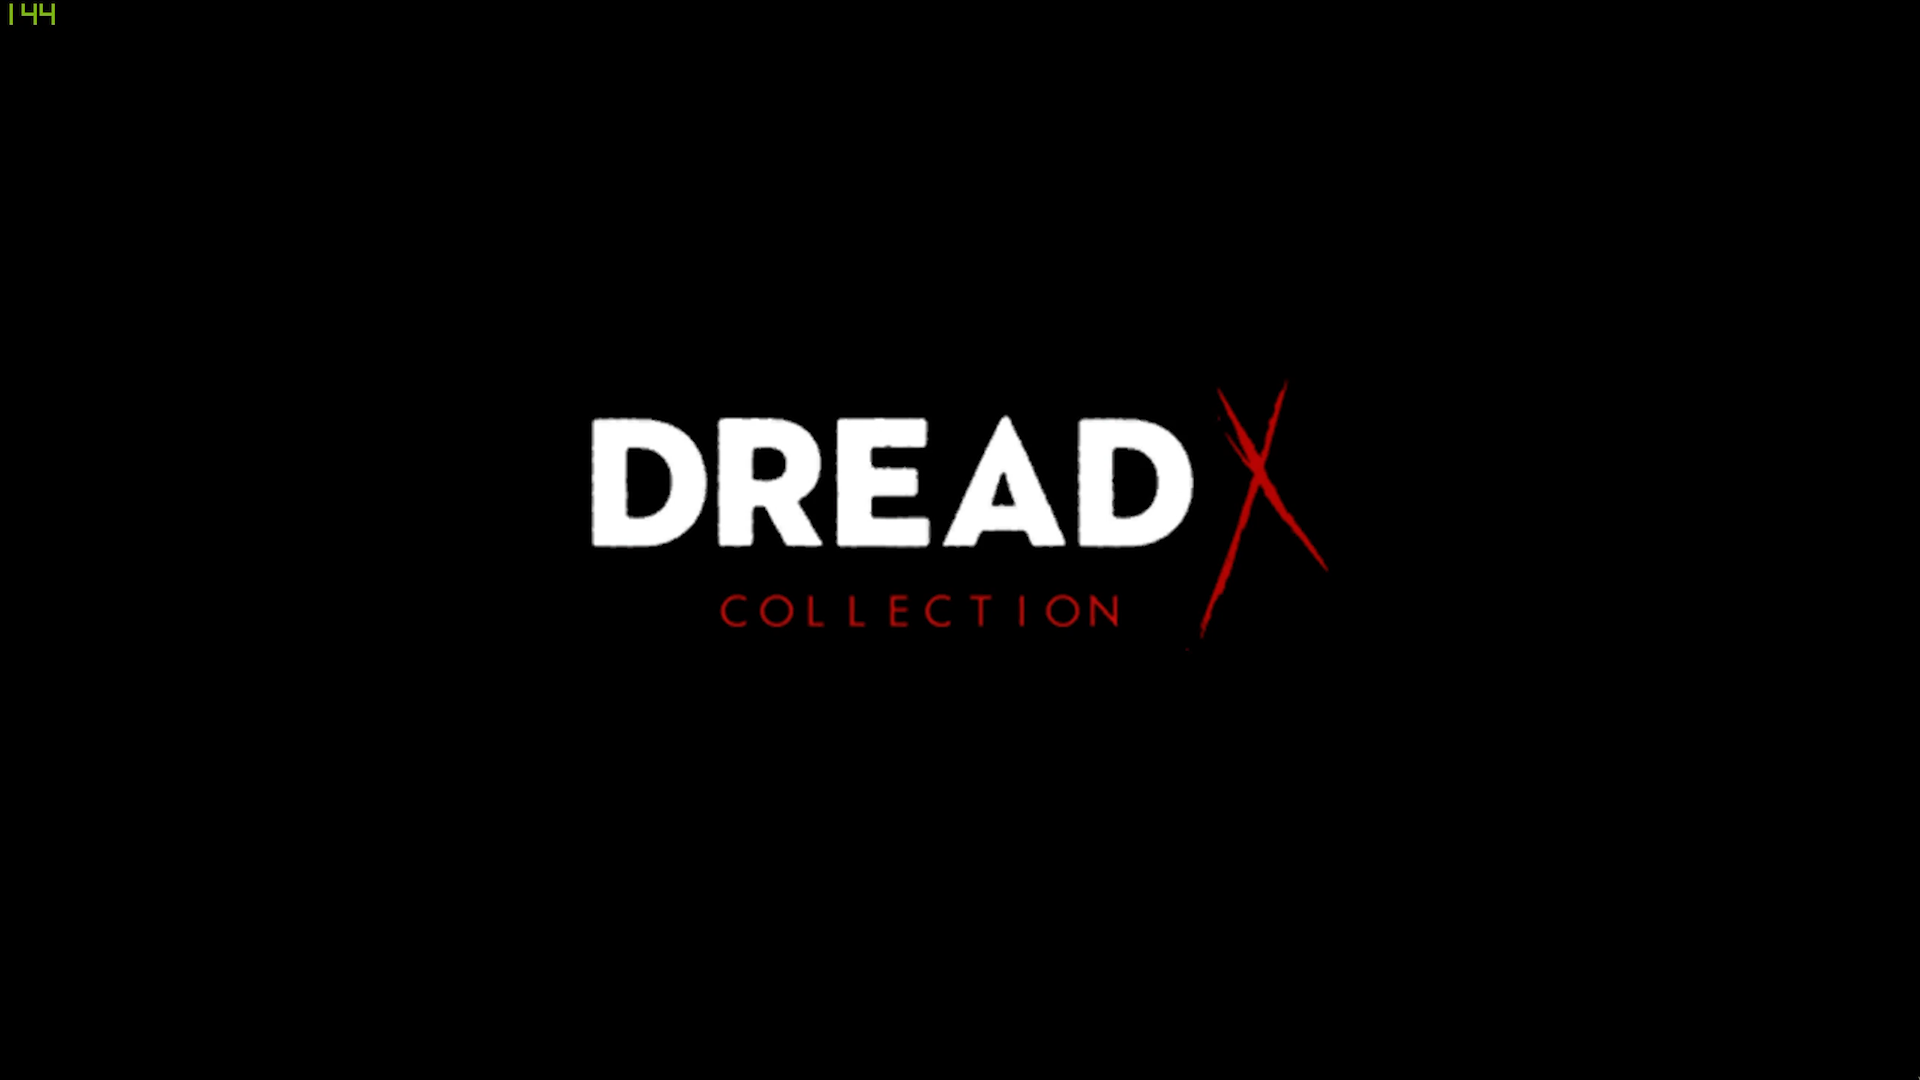 Dread X Collection Review (Featuring Reviews For All 10 Games)